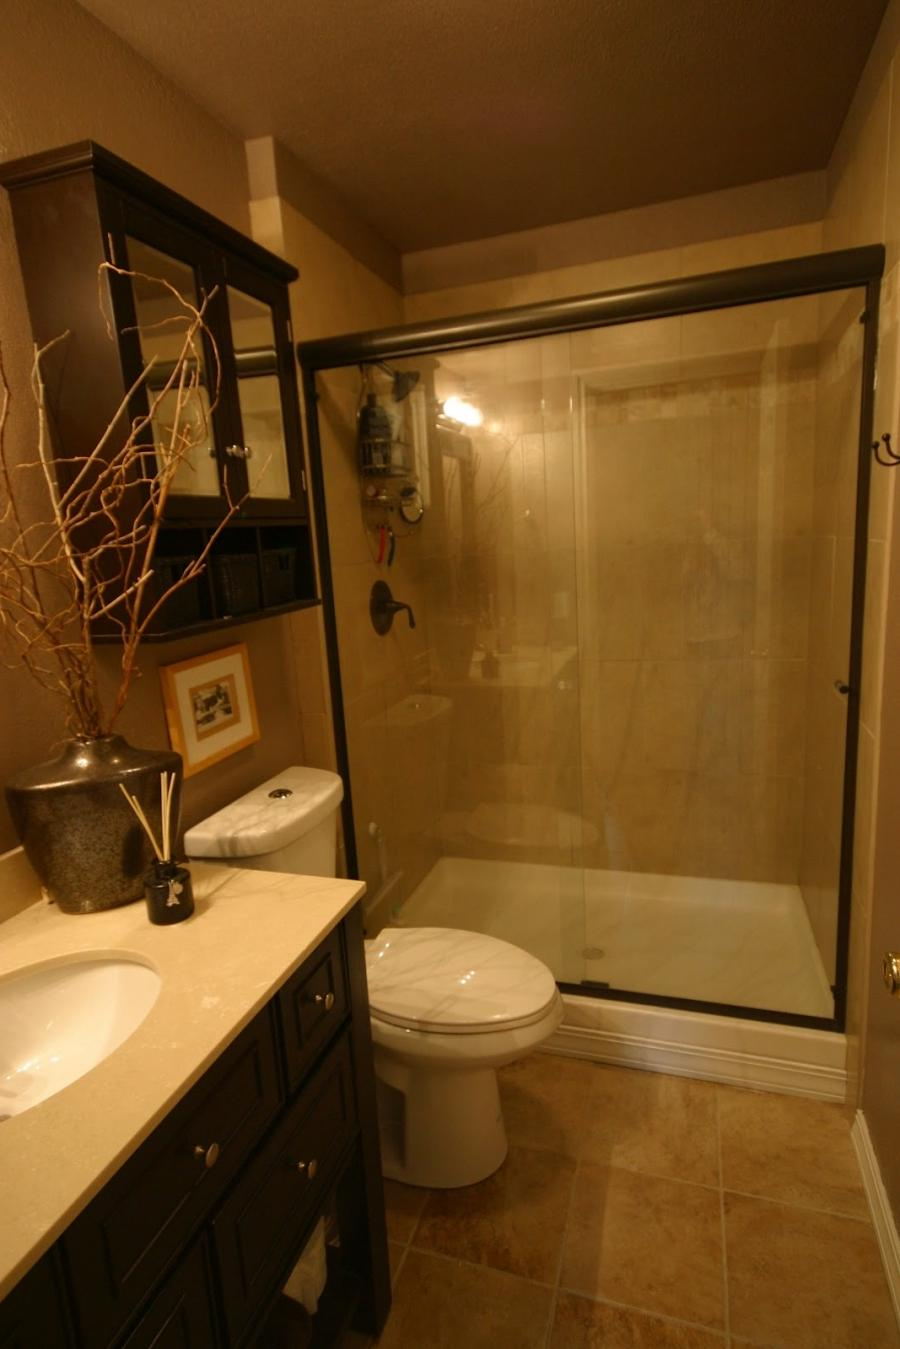 Small bathroom remodel before and after photos Cheap bathroom remodel before and after